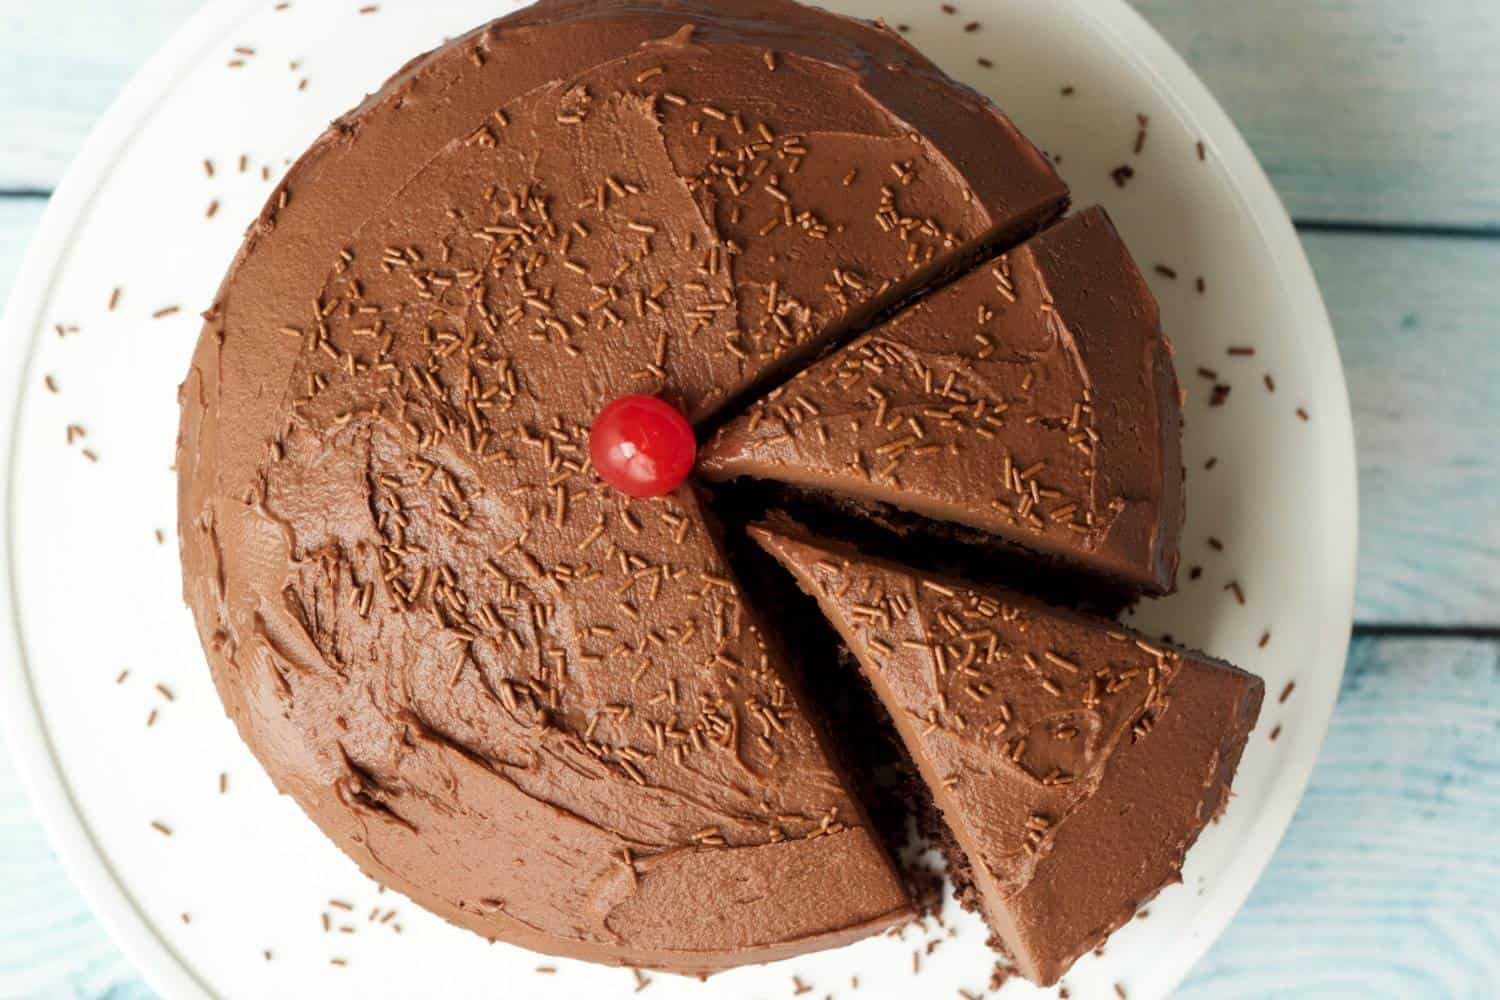 Vegan Gluten Free Chocolate Cake  Gluten Free Chocolate Cake Loving It Vegan